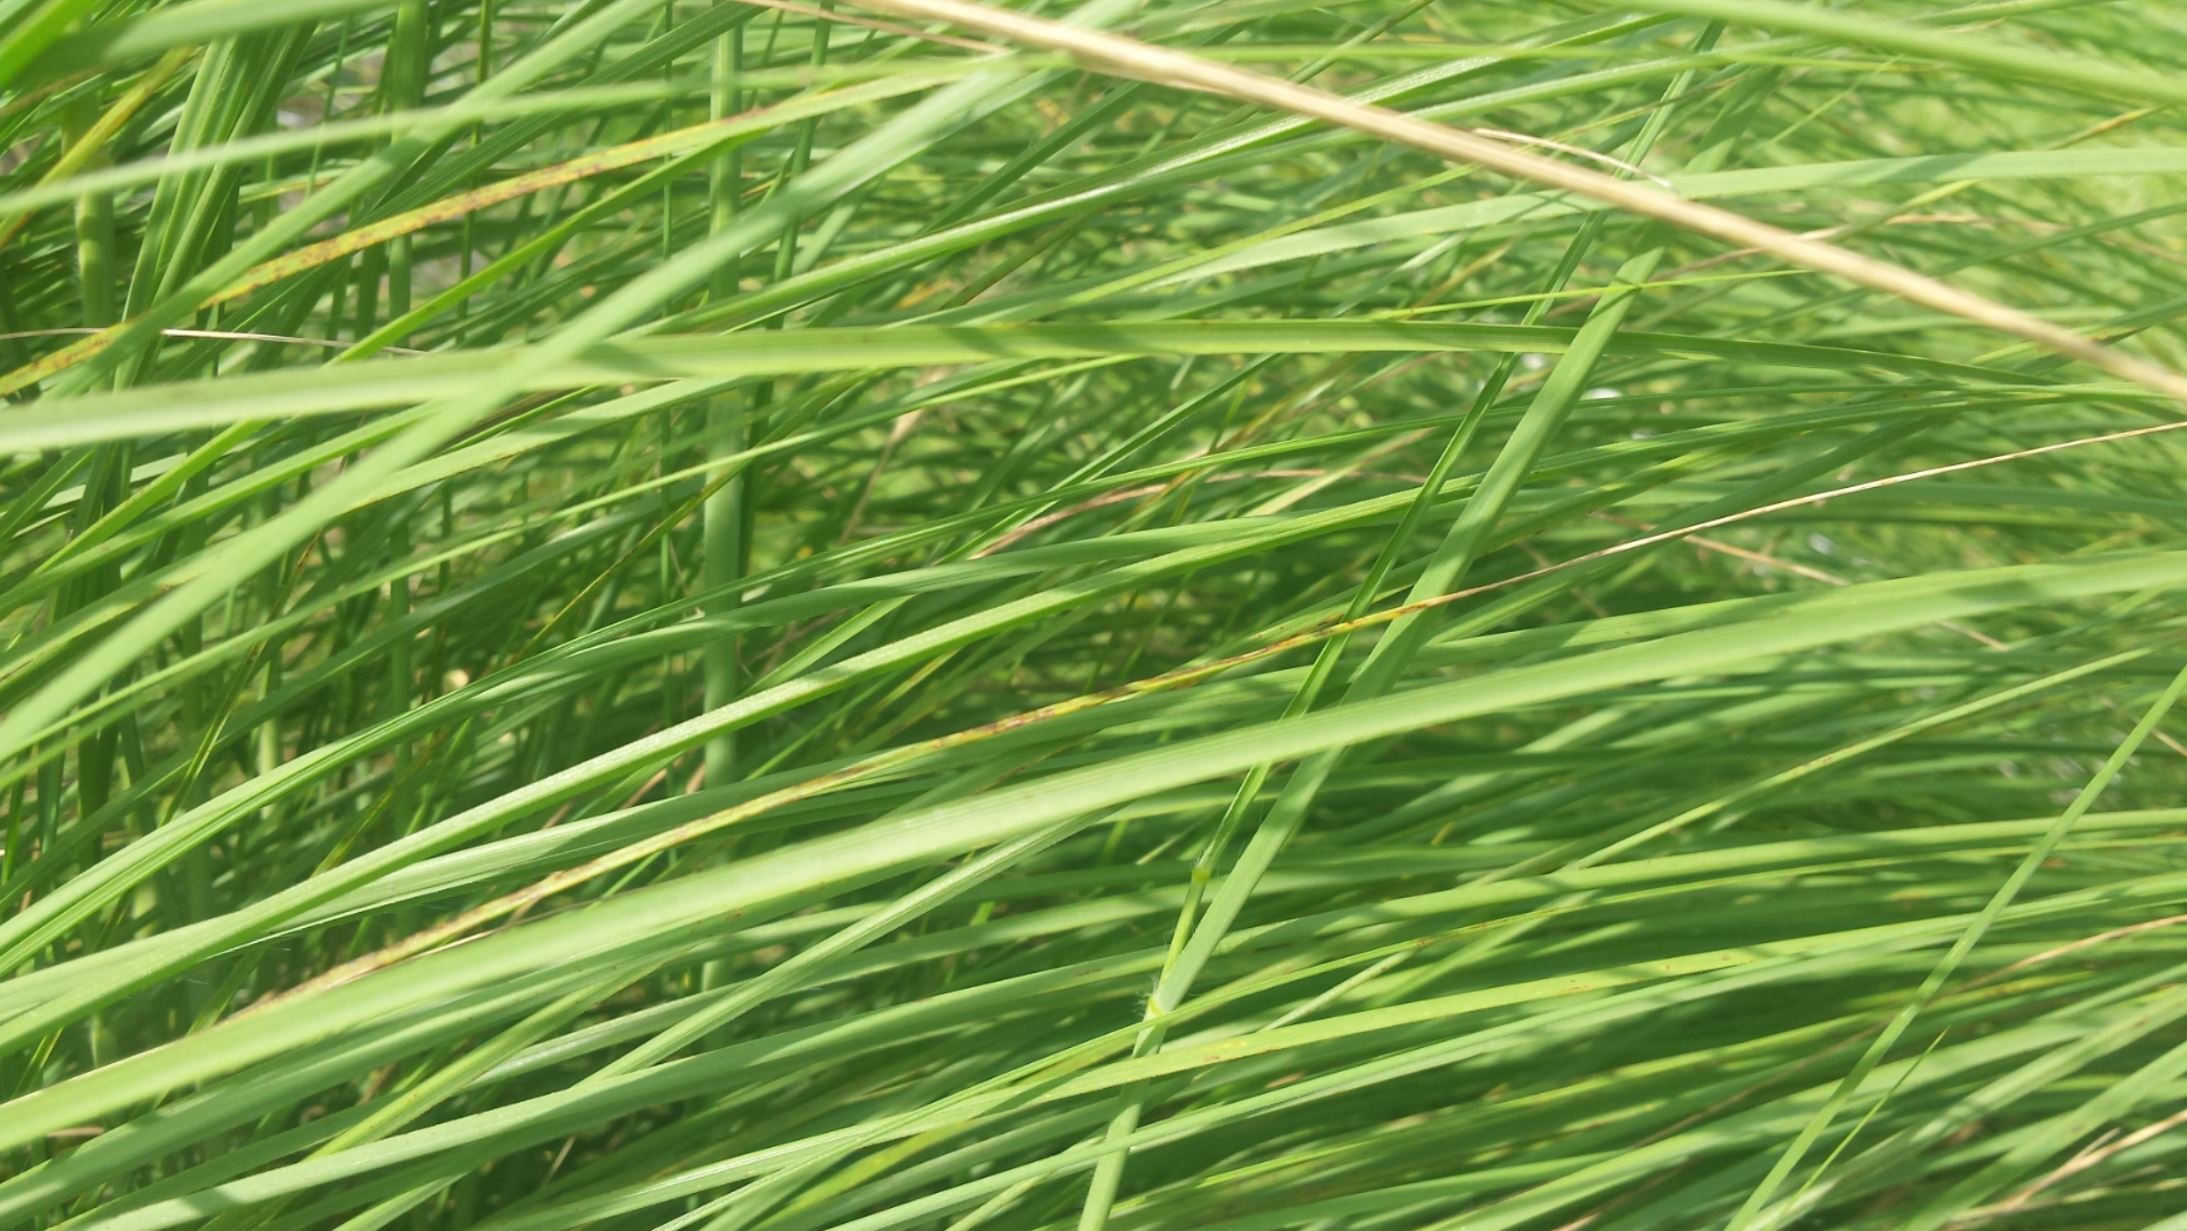 long green grass blades bent over one another, covering injustices and provdiing a soft bed of mercy